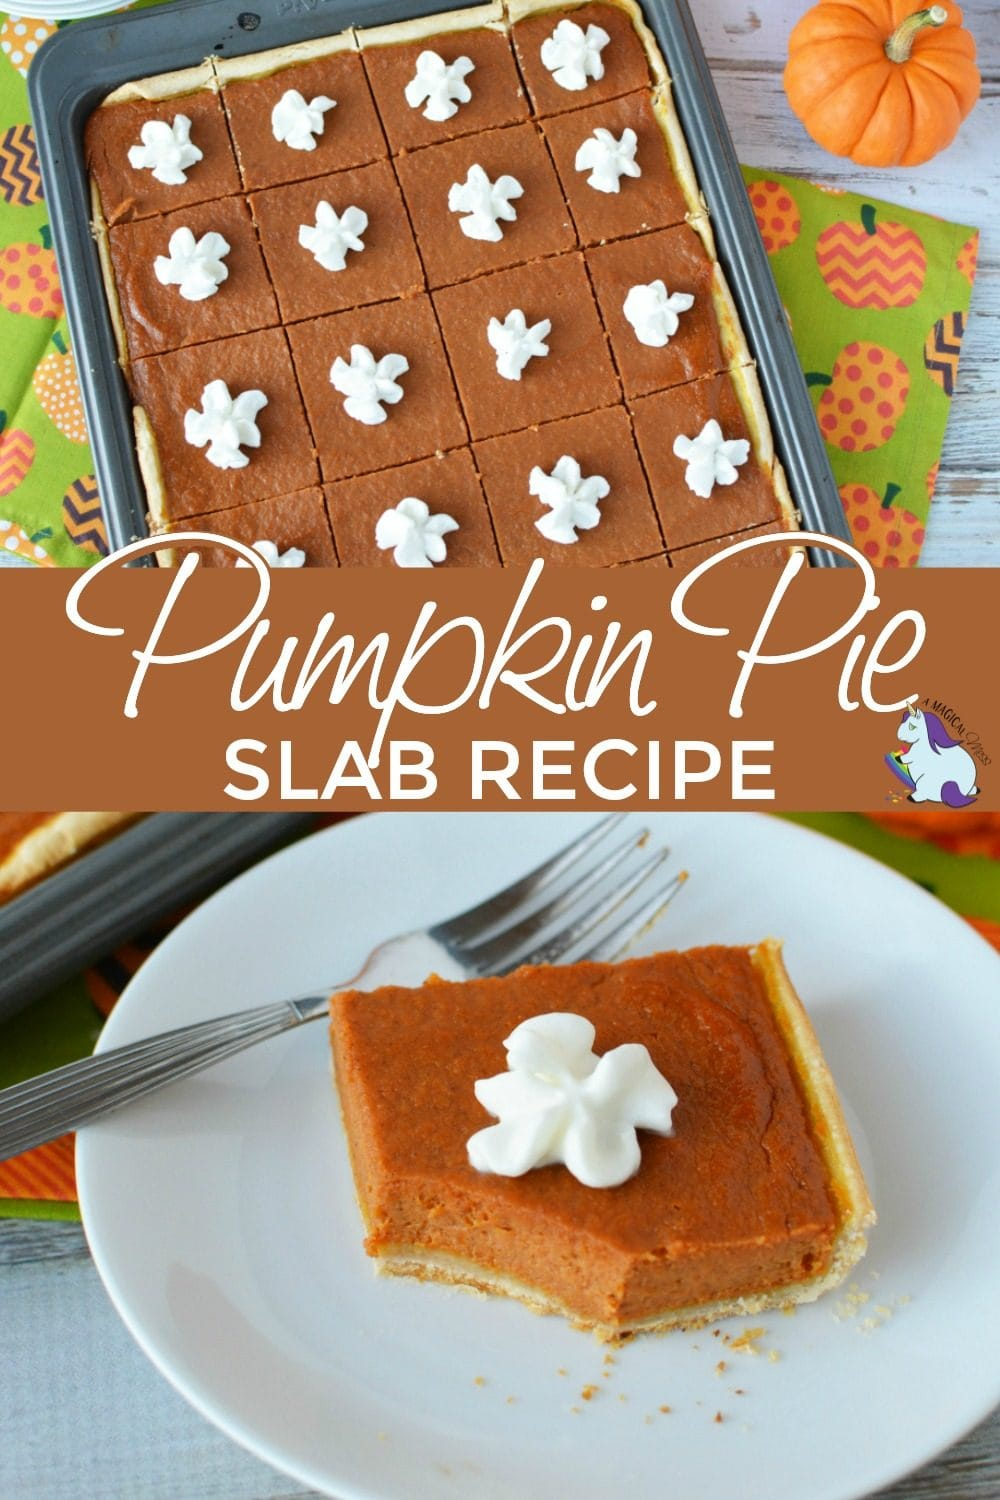 Pumpkin pie slices on a try and one with a bite taken out.